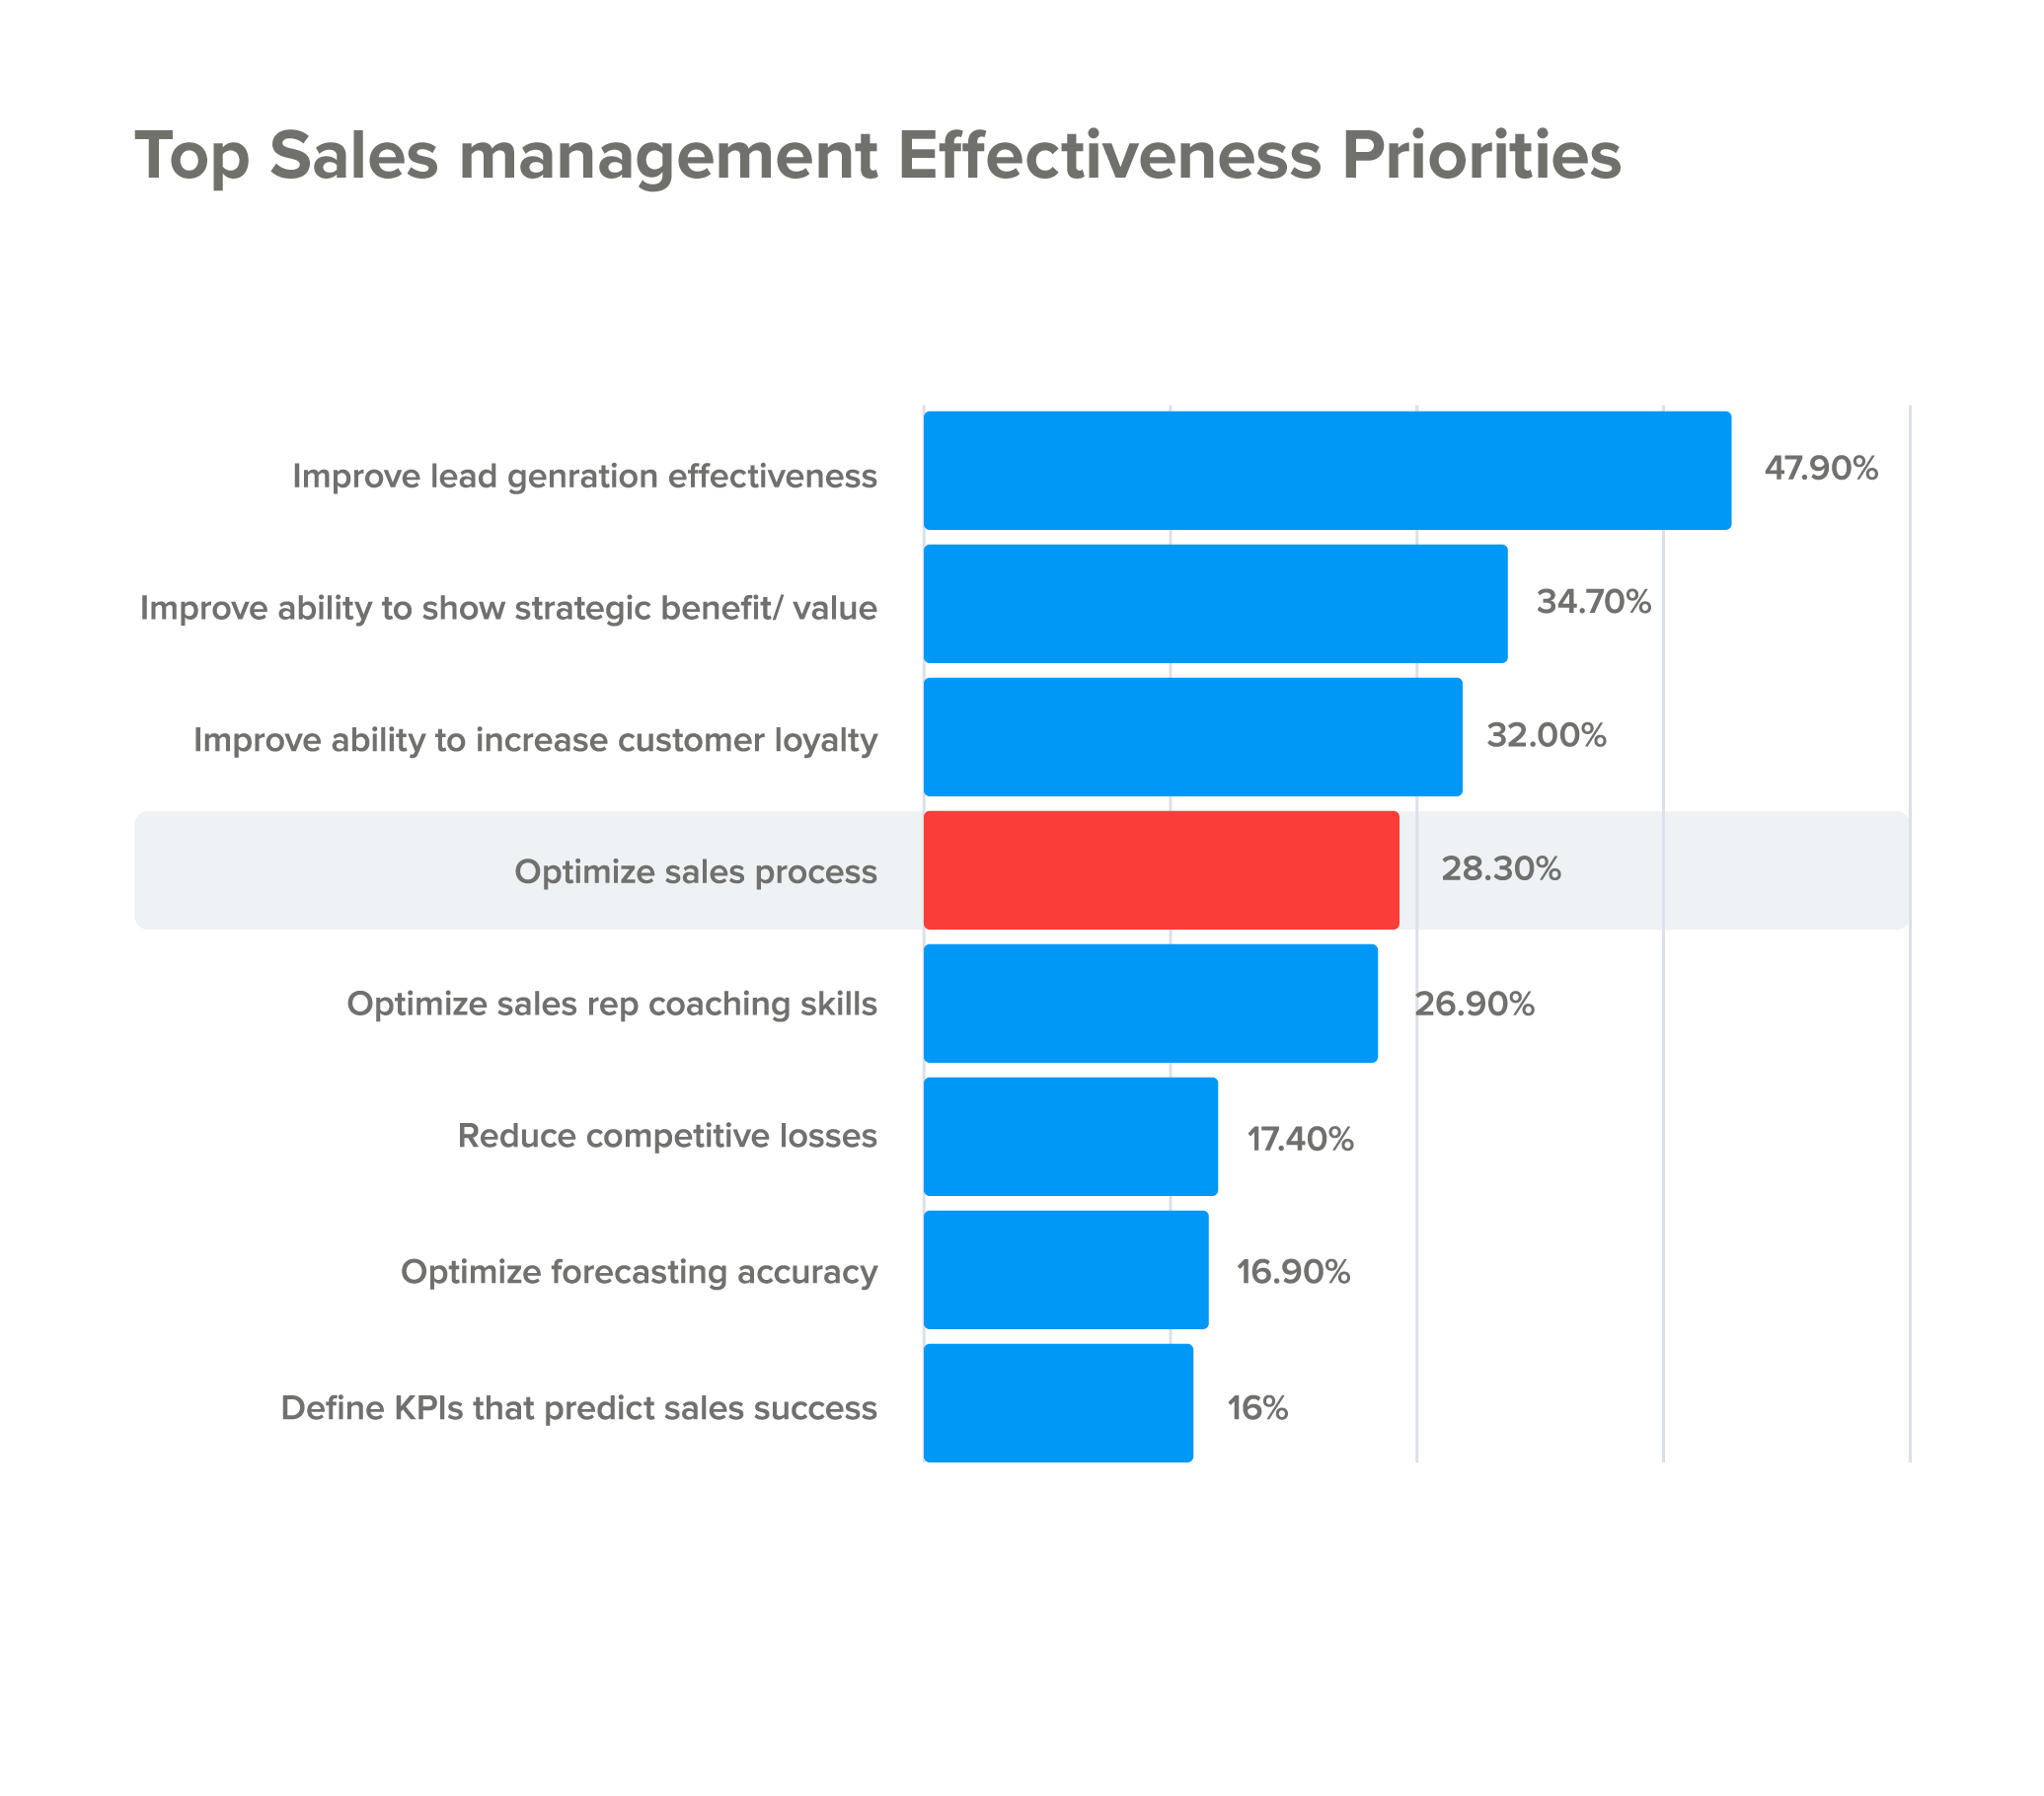 Top sales management priorities for effective selling